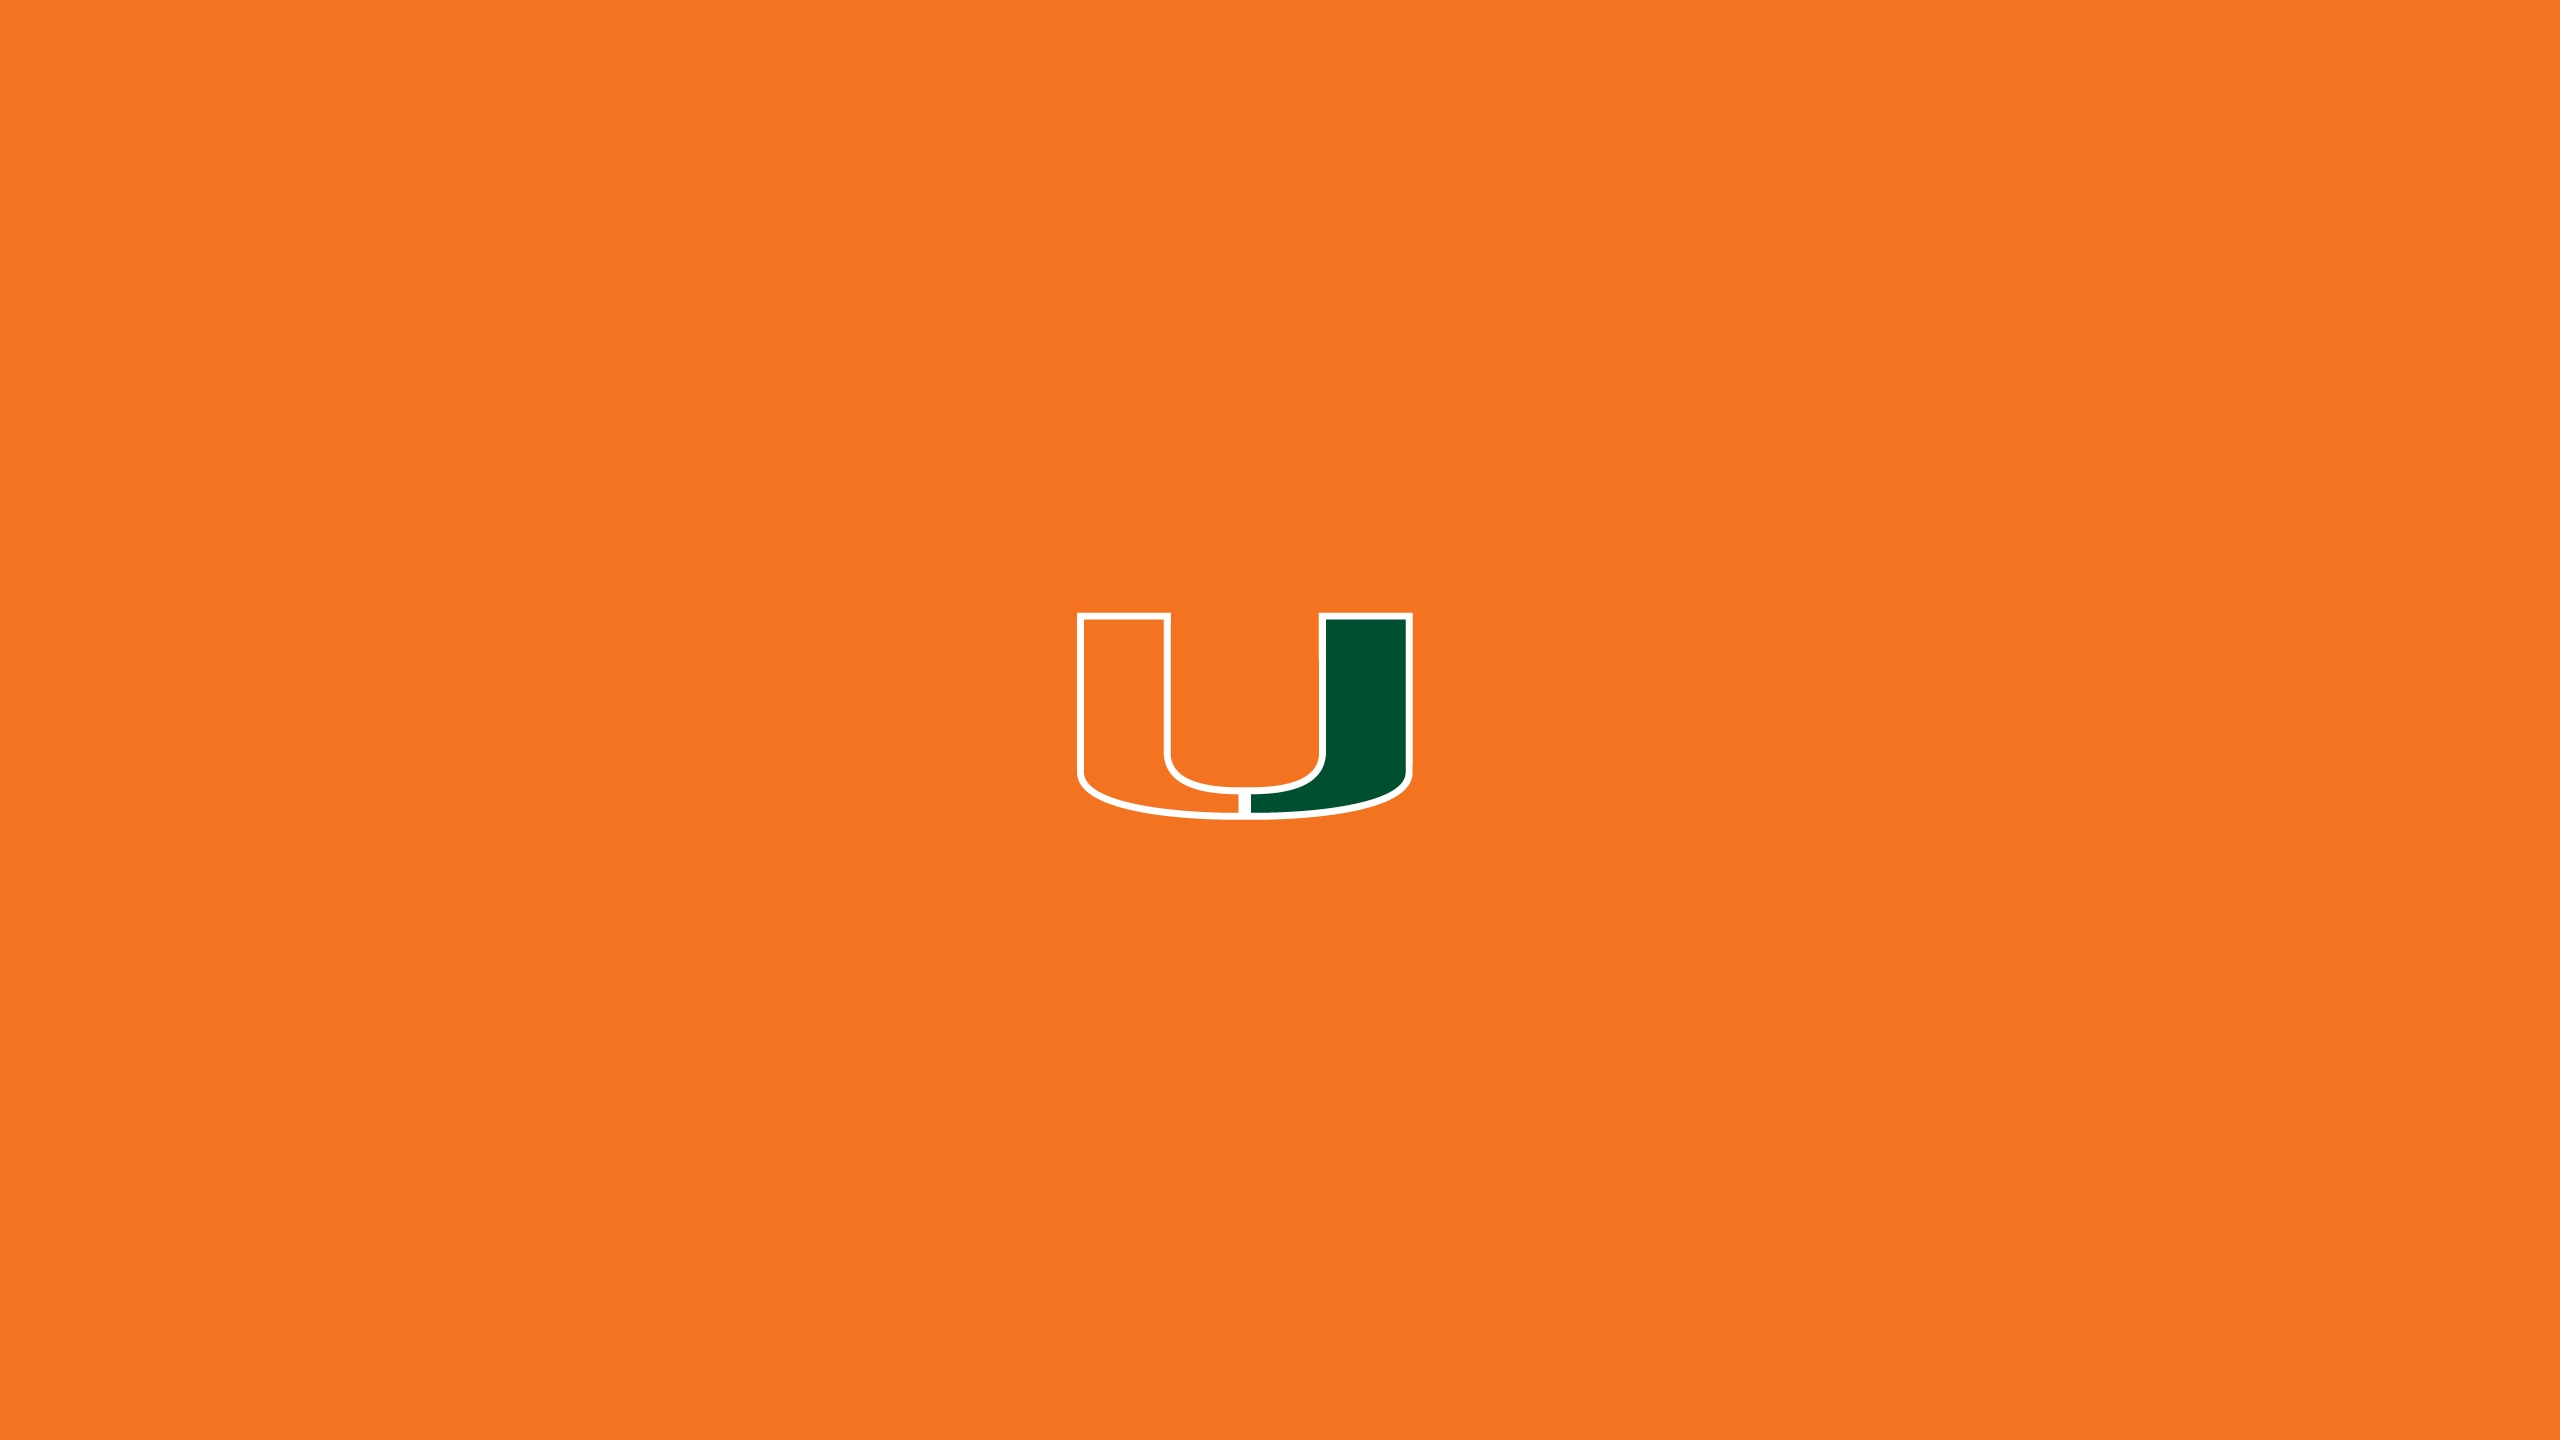 university of miami - chicago pizza and sports grille